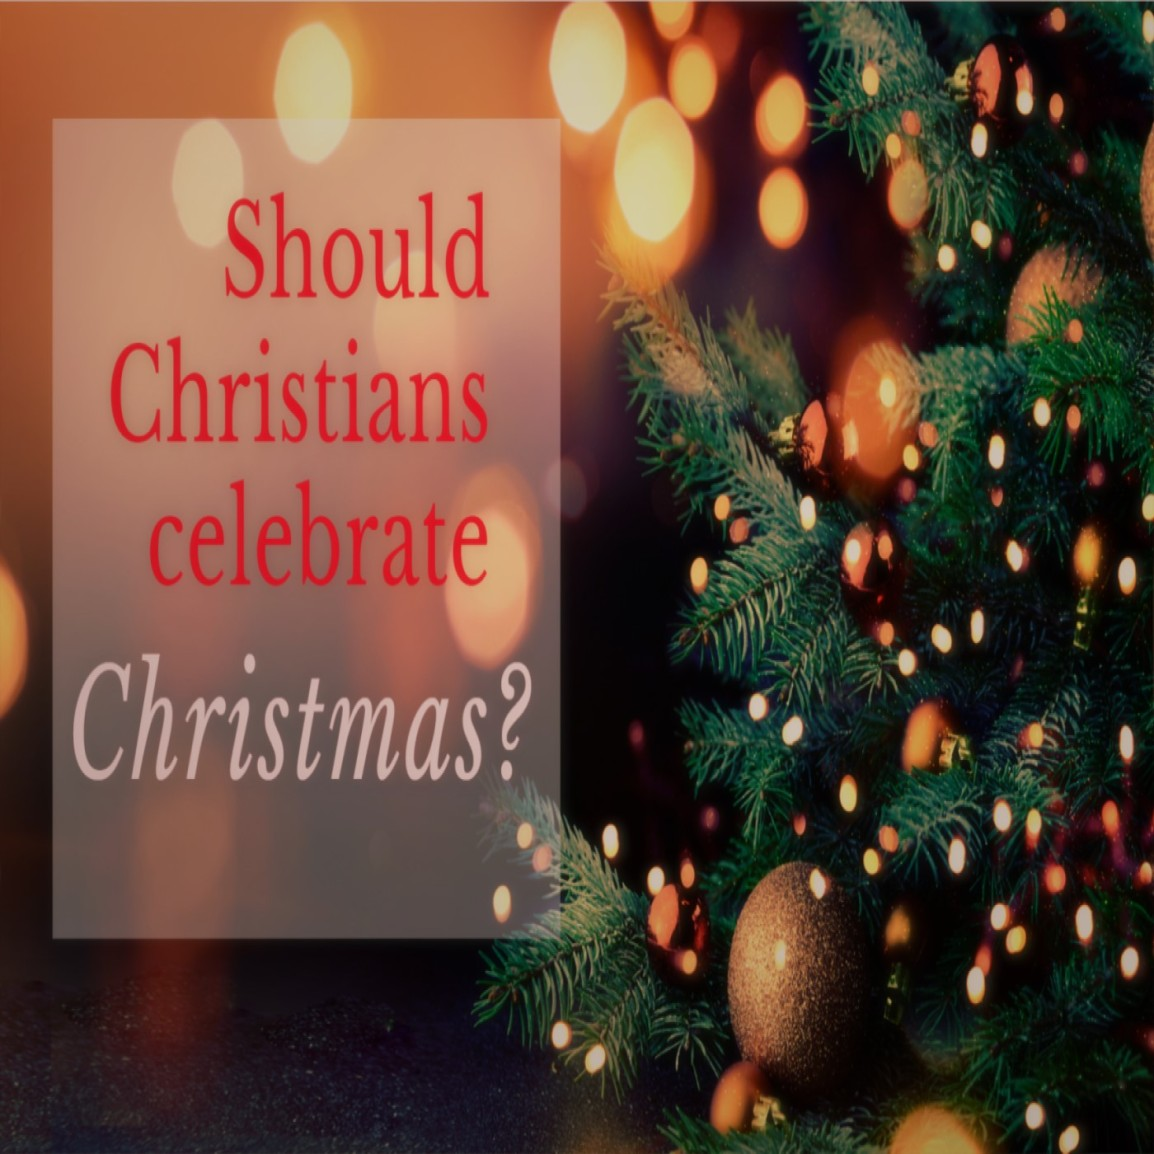 Exposing the deception of Christmas